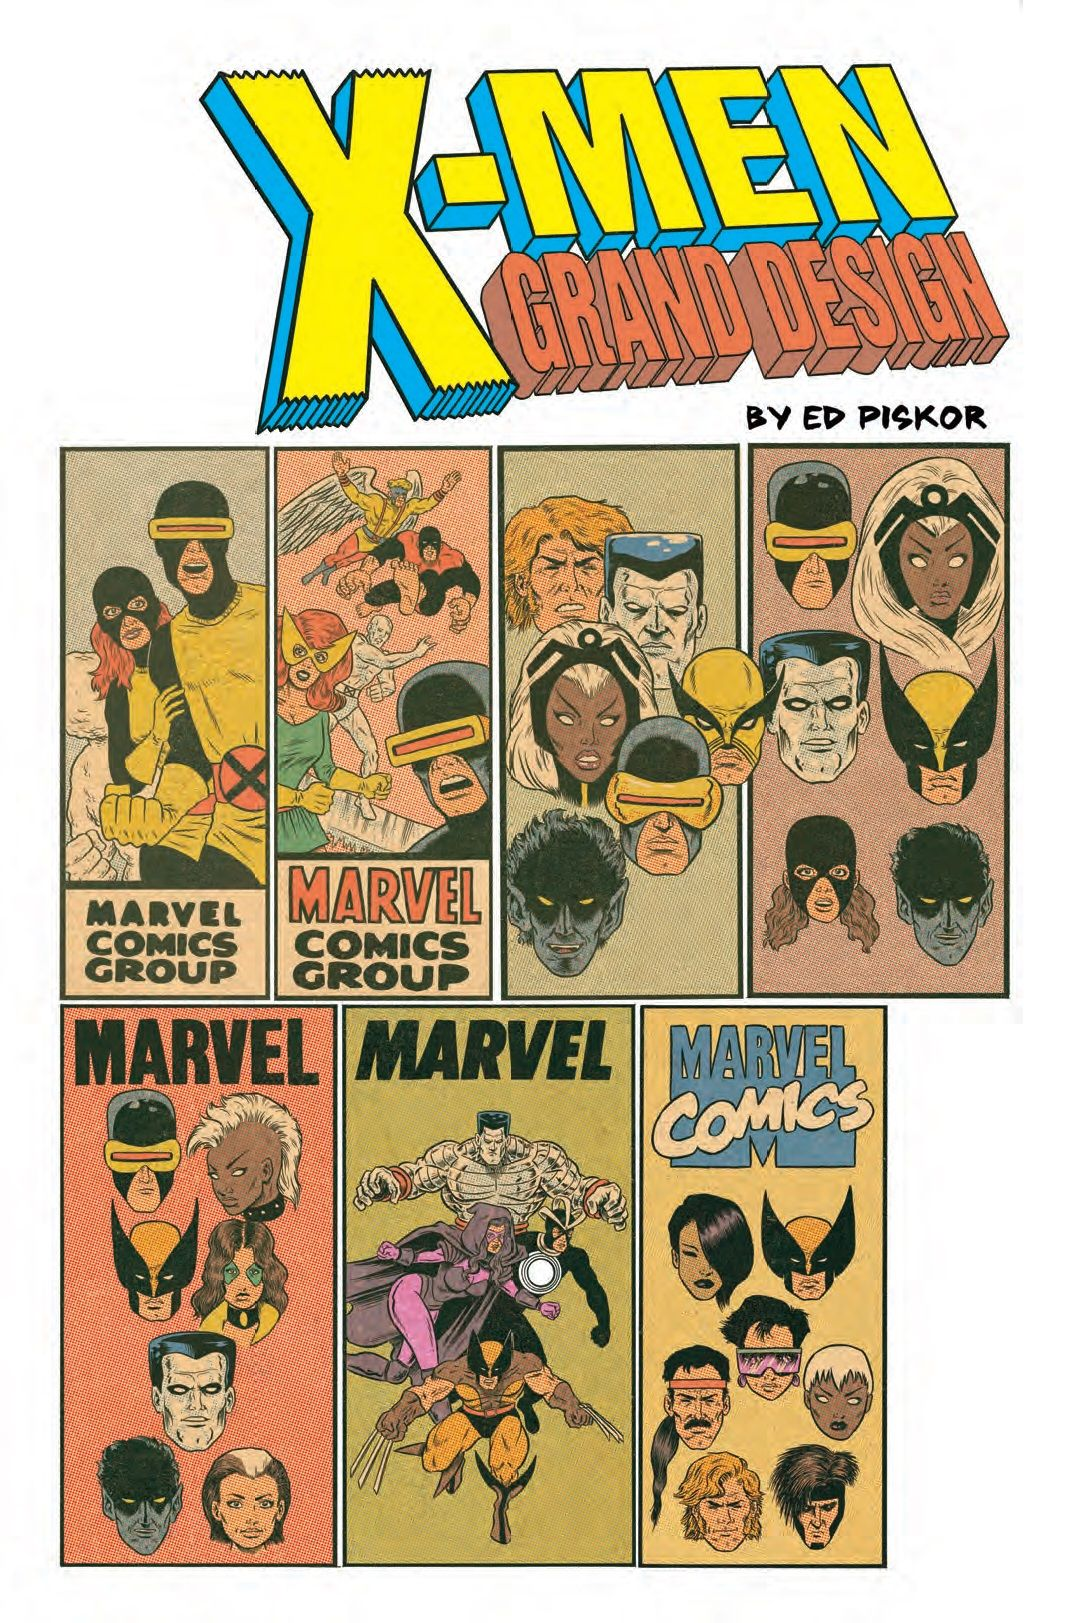 X Men Origins Retold In Preview Of Ed Piskor S X Men Grand Design Grand Designs Comics Marvel Comics